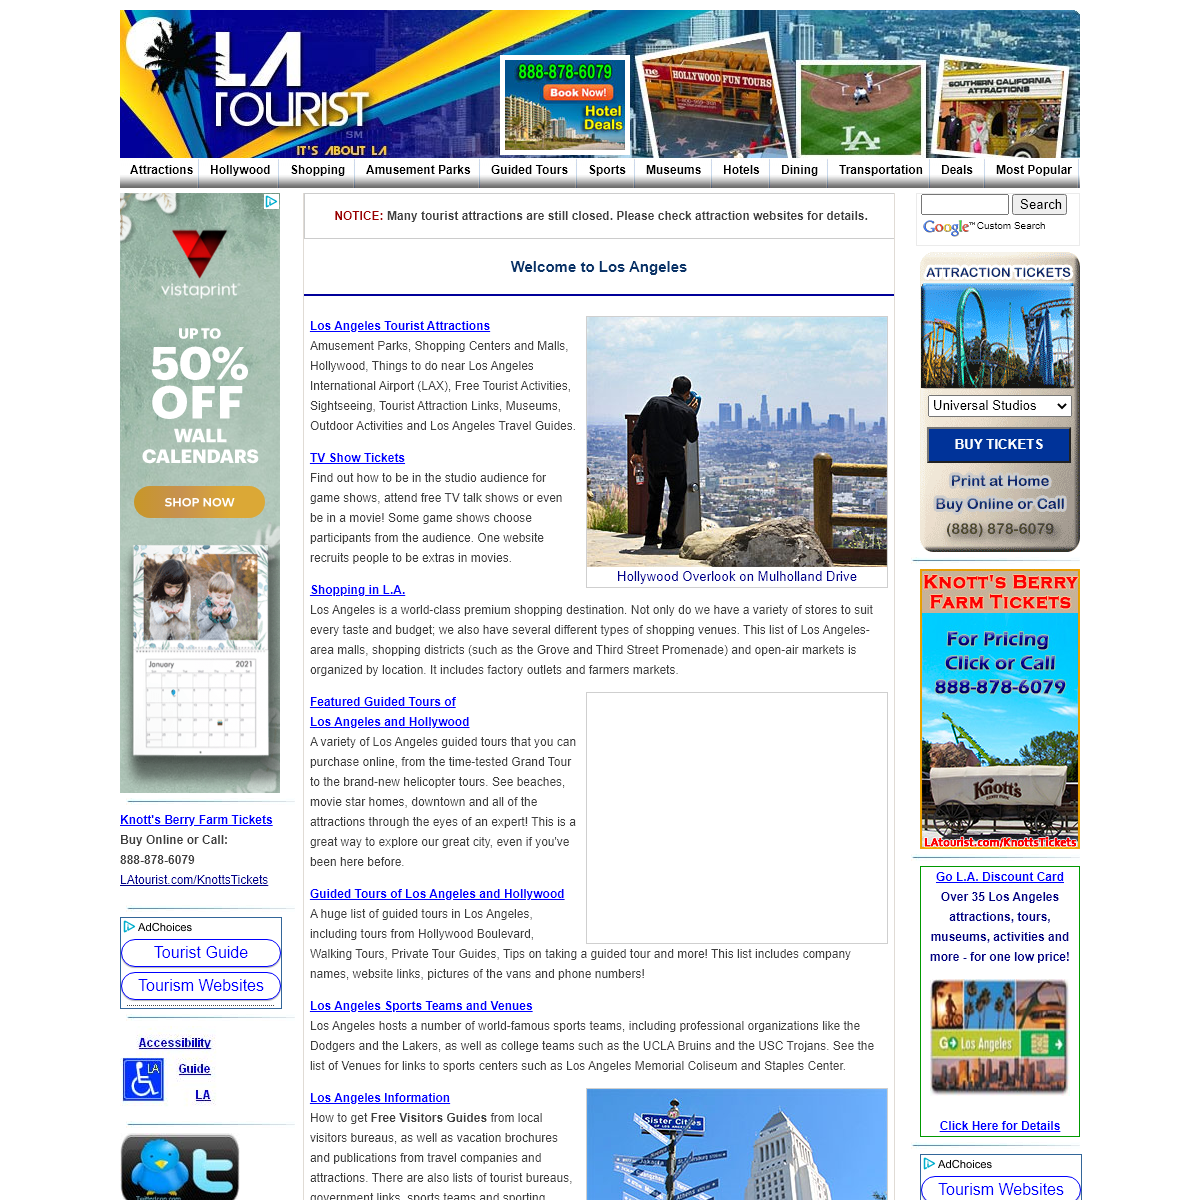 Los Angeles Tourist Information, Attractions and Activities